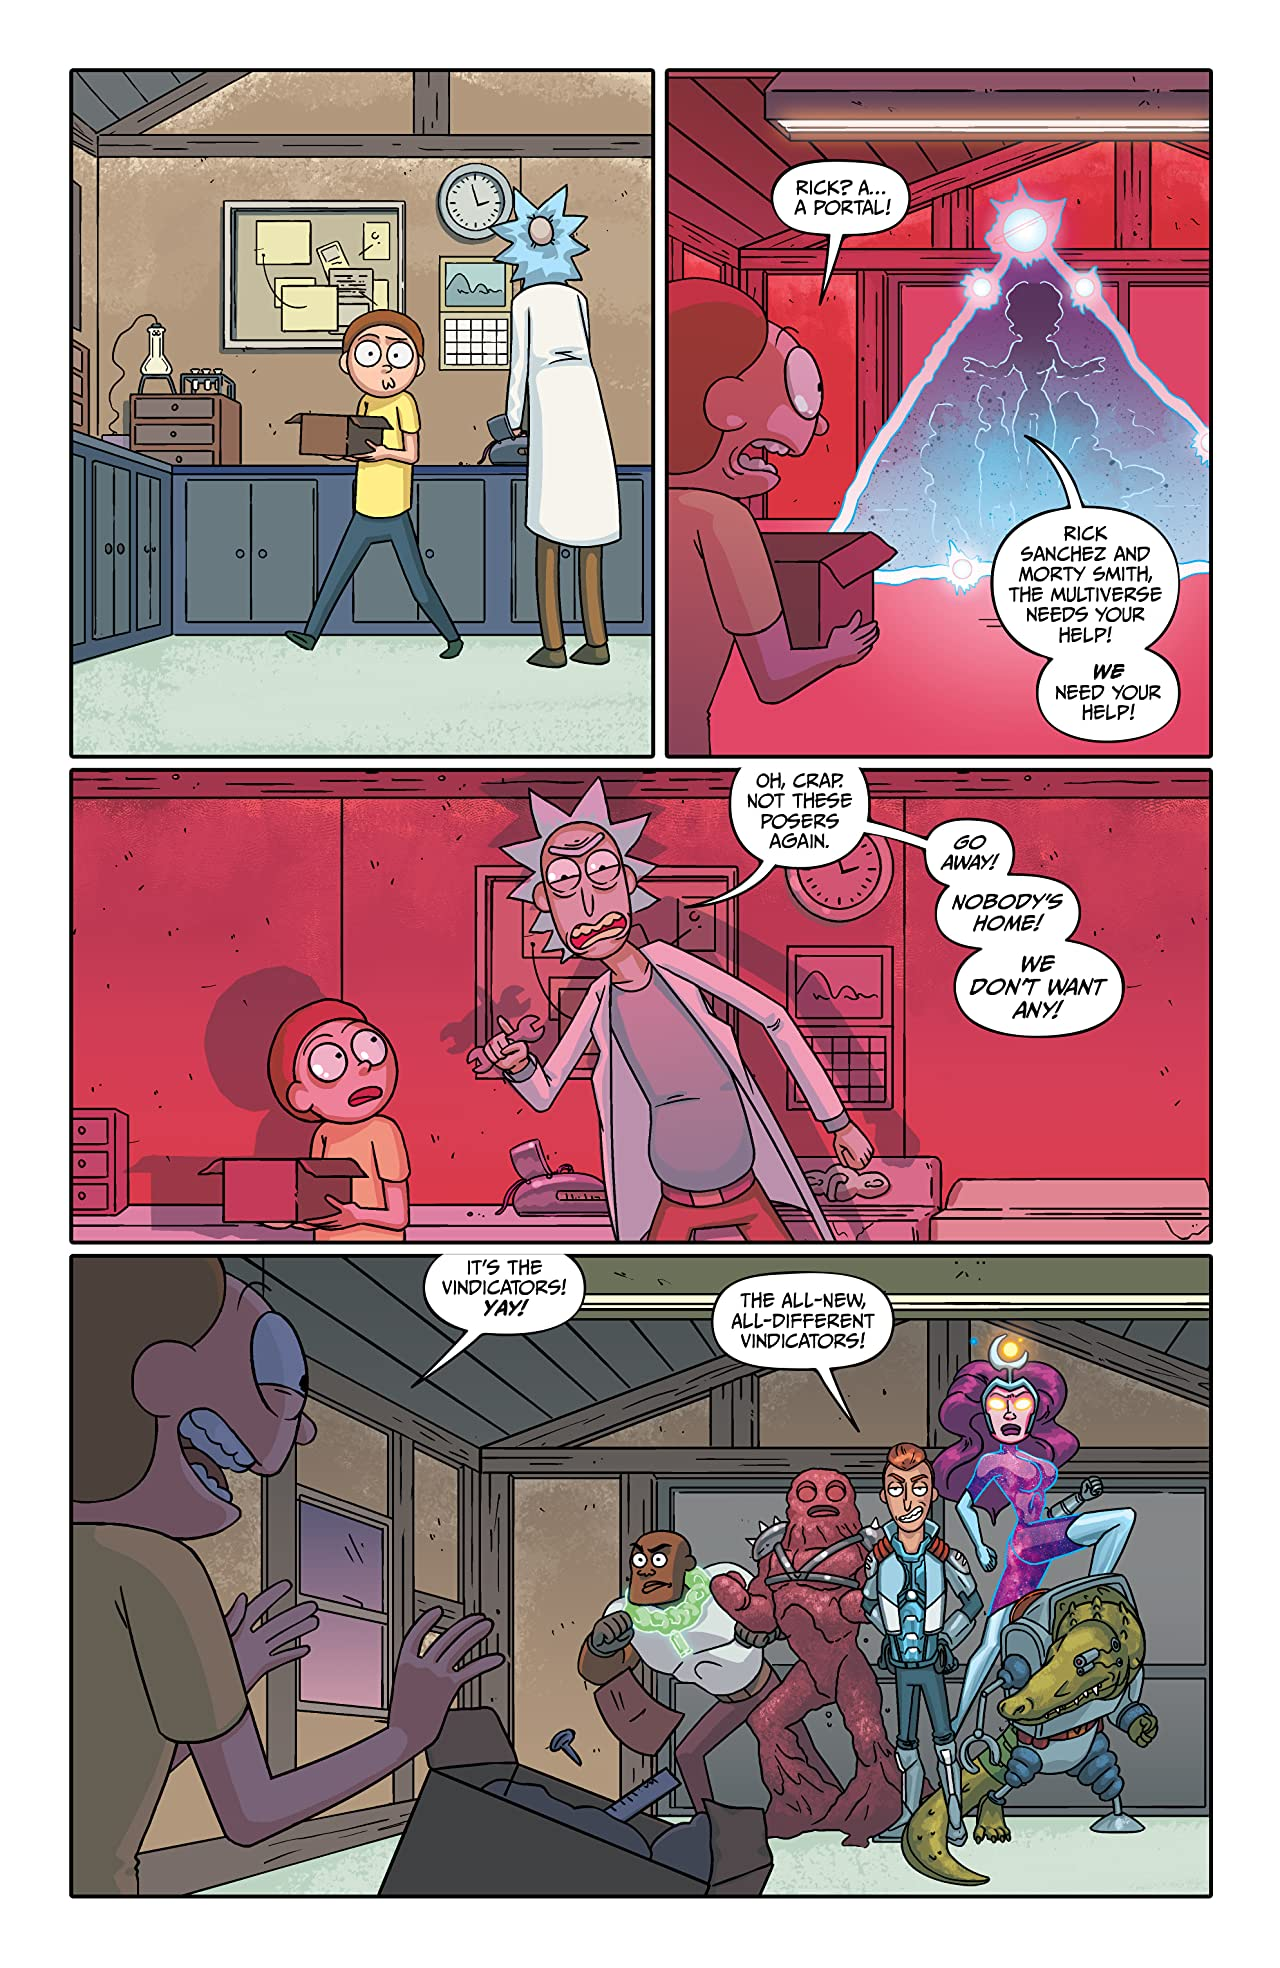 Rick and Morty Presents #1: The Vindicators